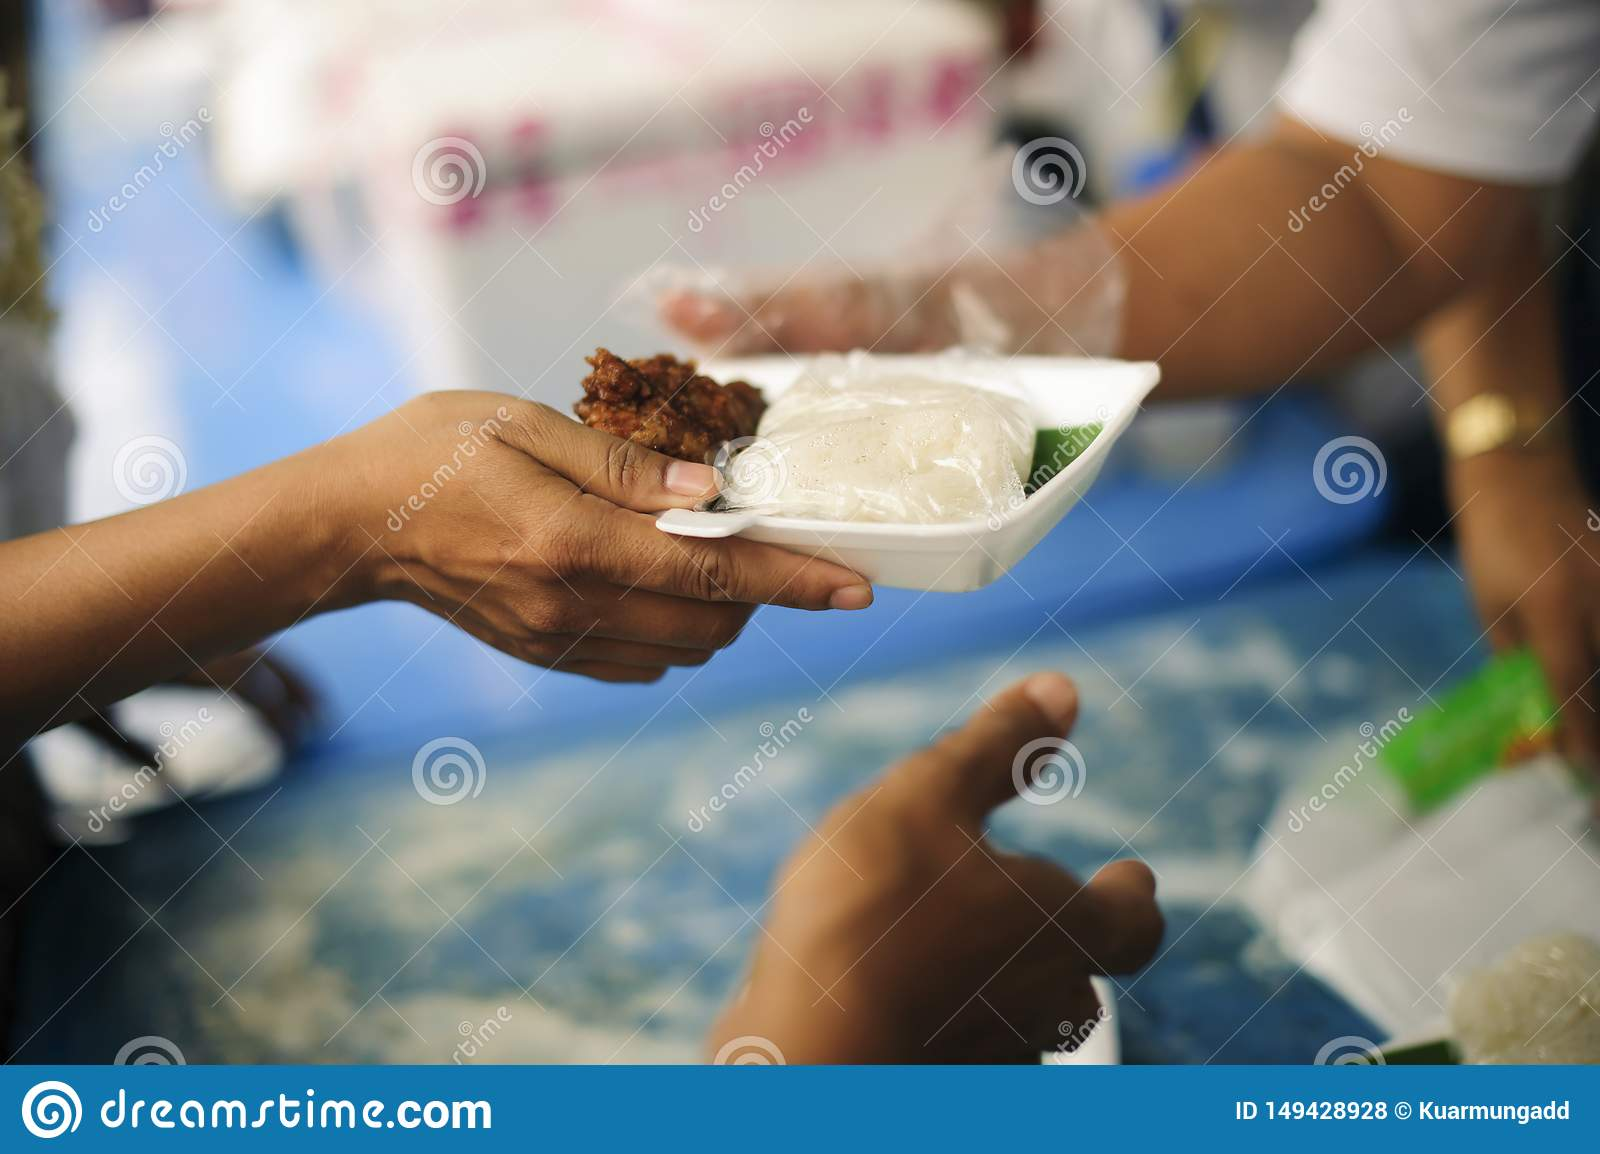 Concept of food sharing for the poor to alleviate hunger : Social Problems of Poverty Helped by Feeding : Donate food to people in